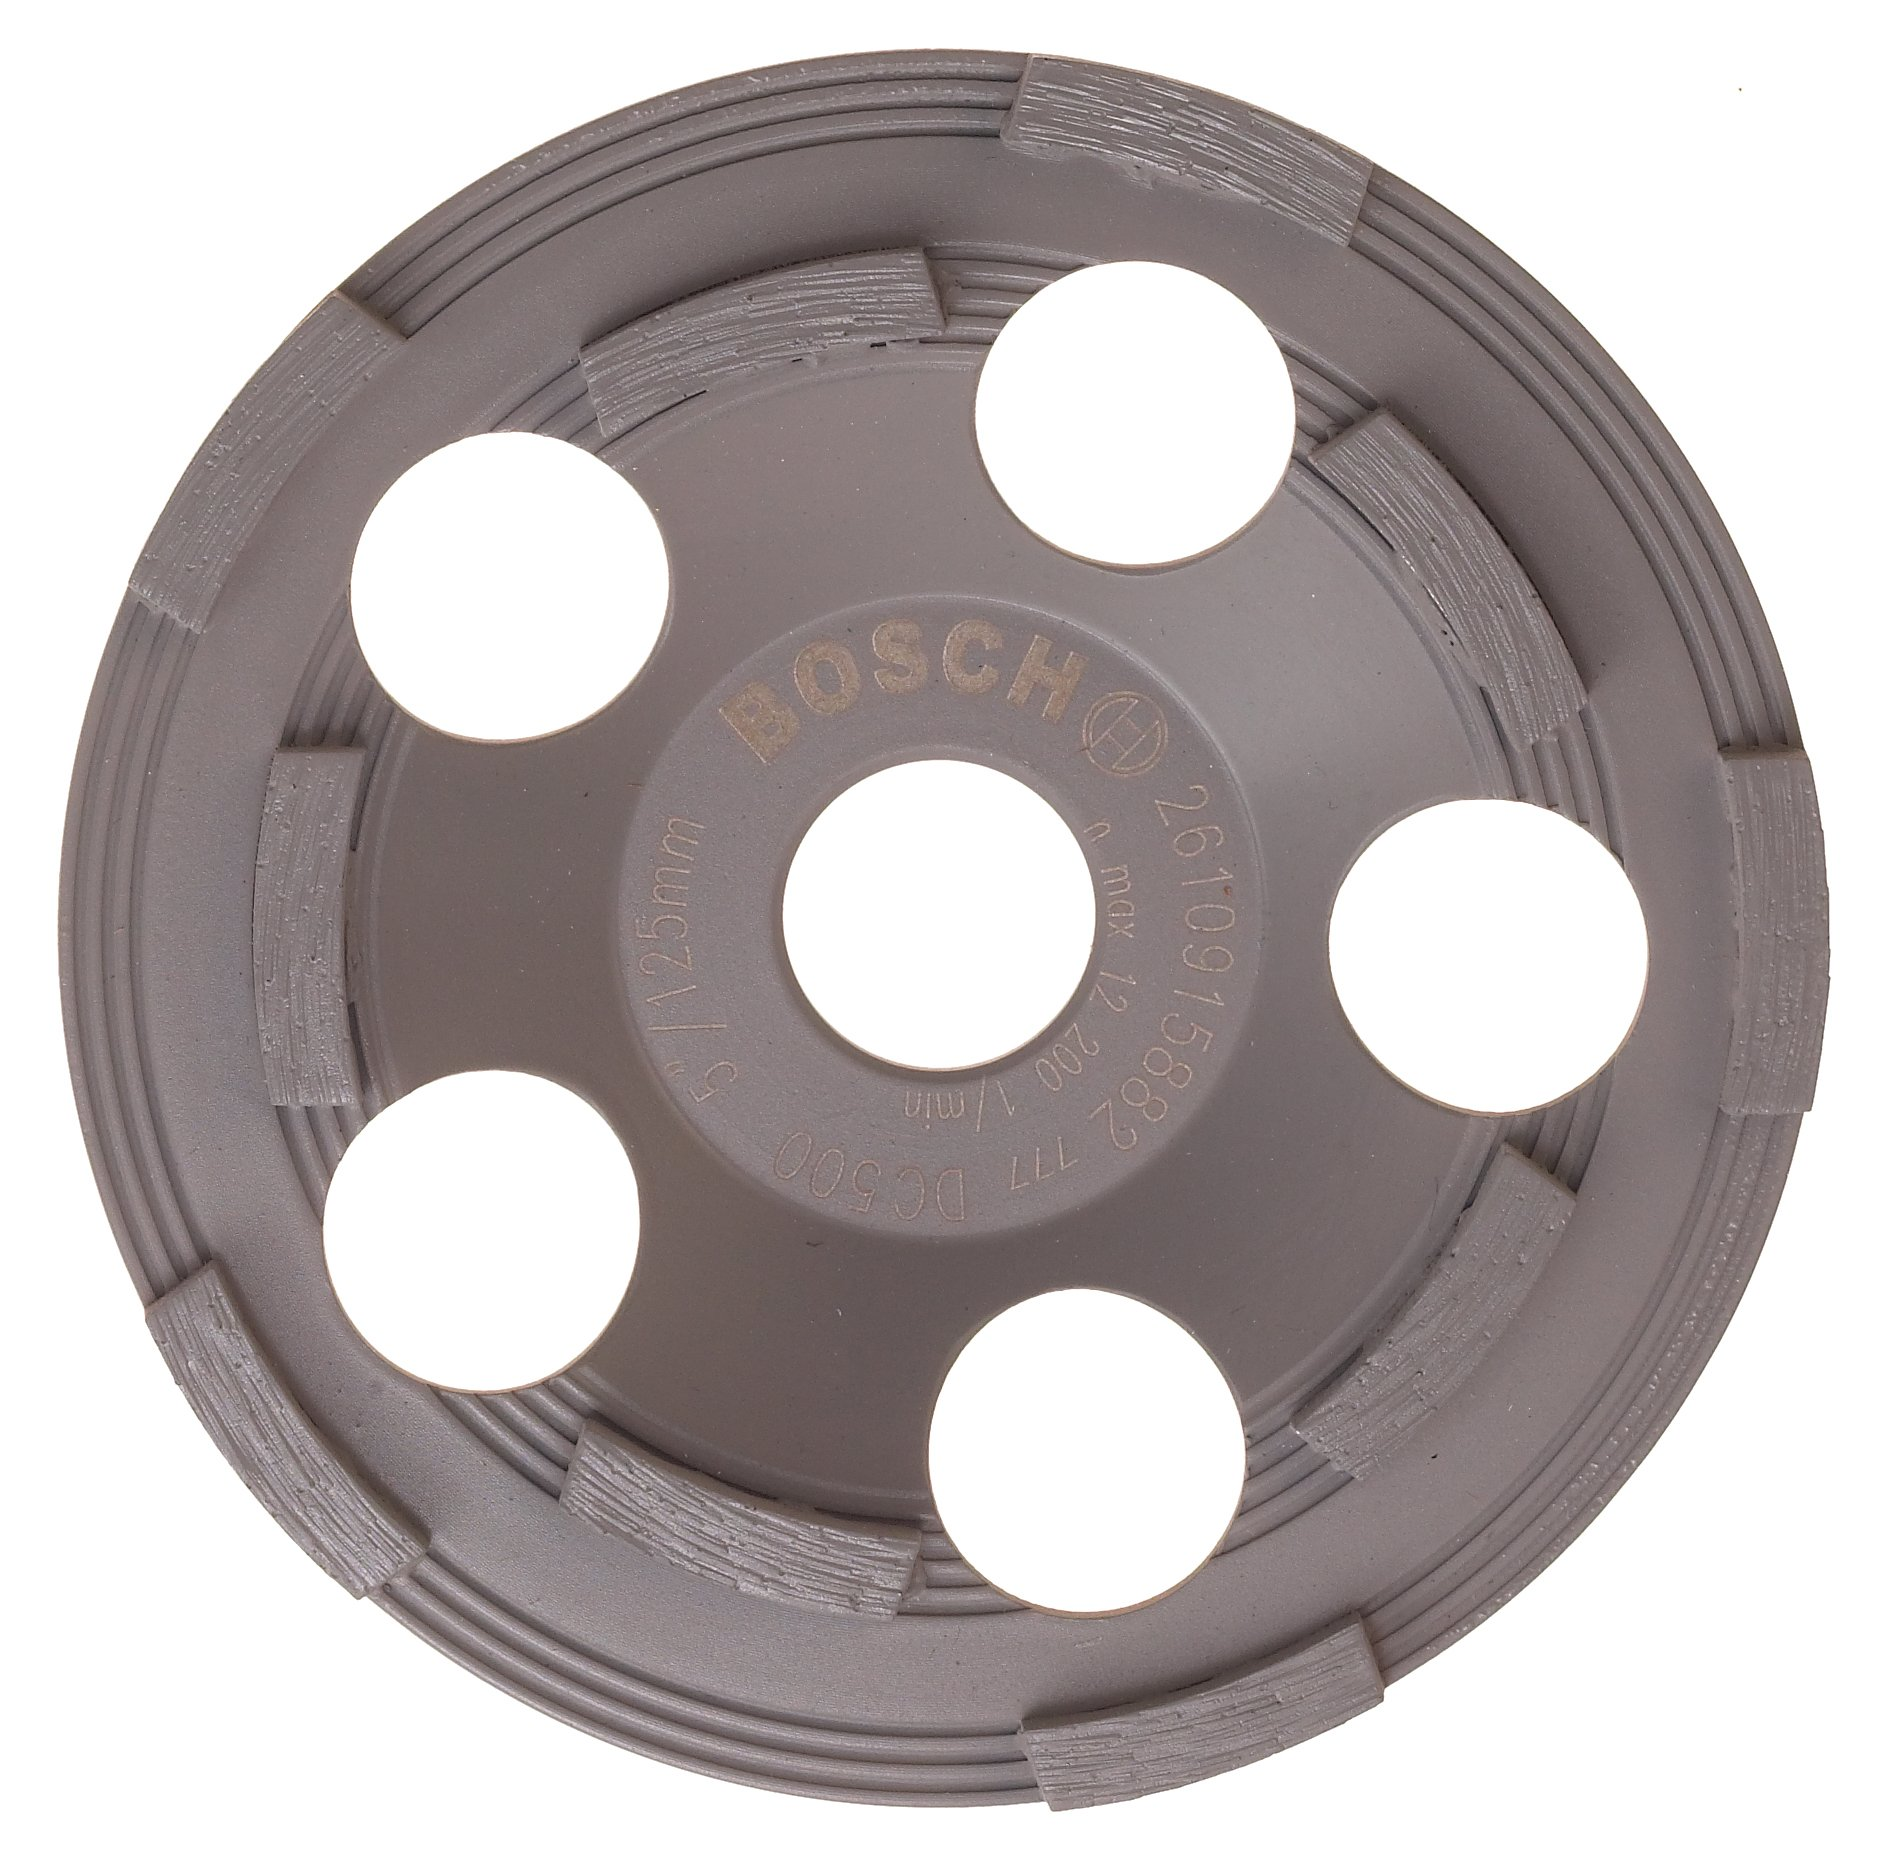 Bosch DC500 5-Inch Diamond Cup Grinding Wheel for Protective Coatings by Bosch